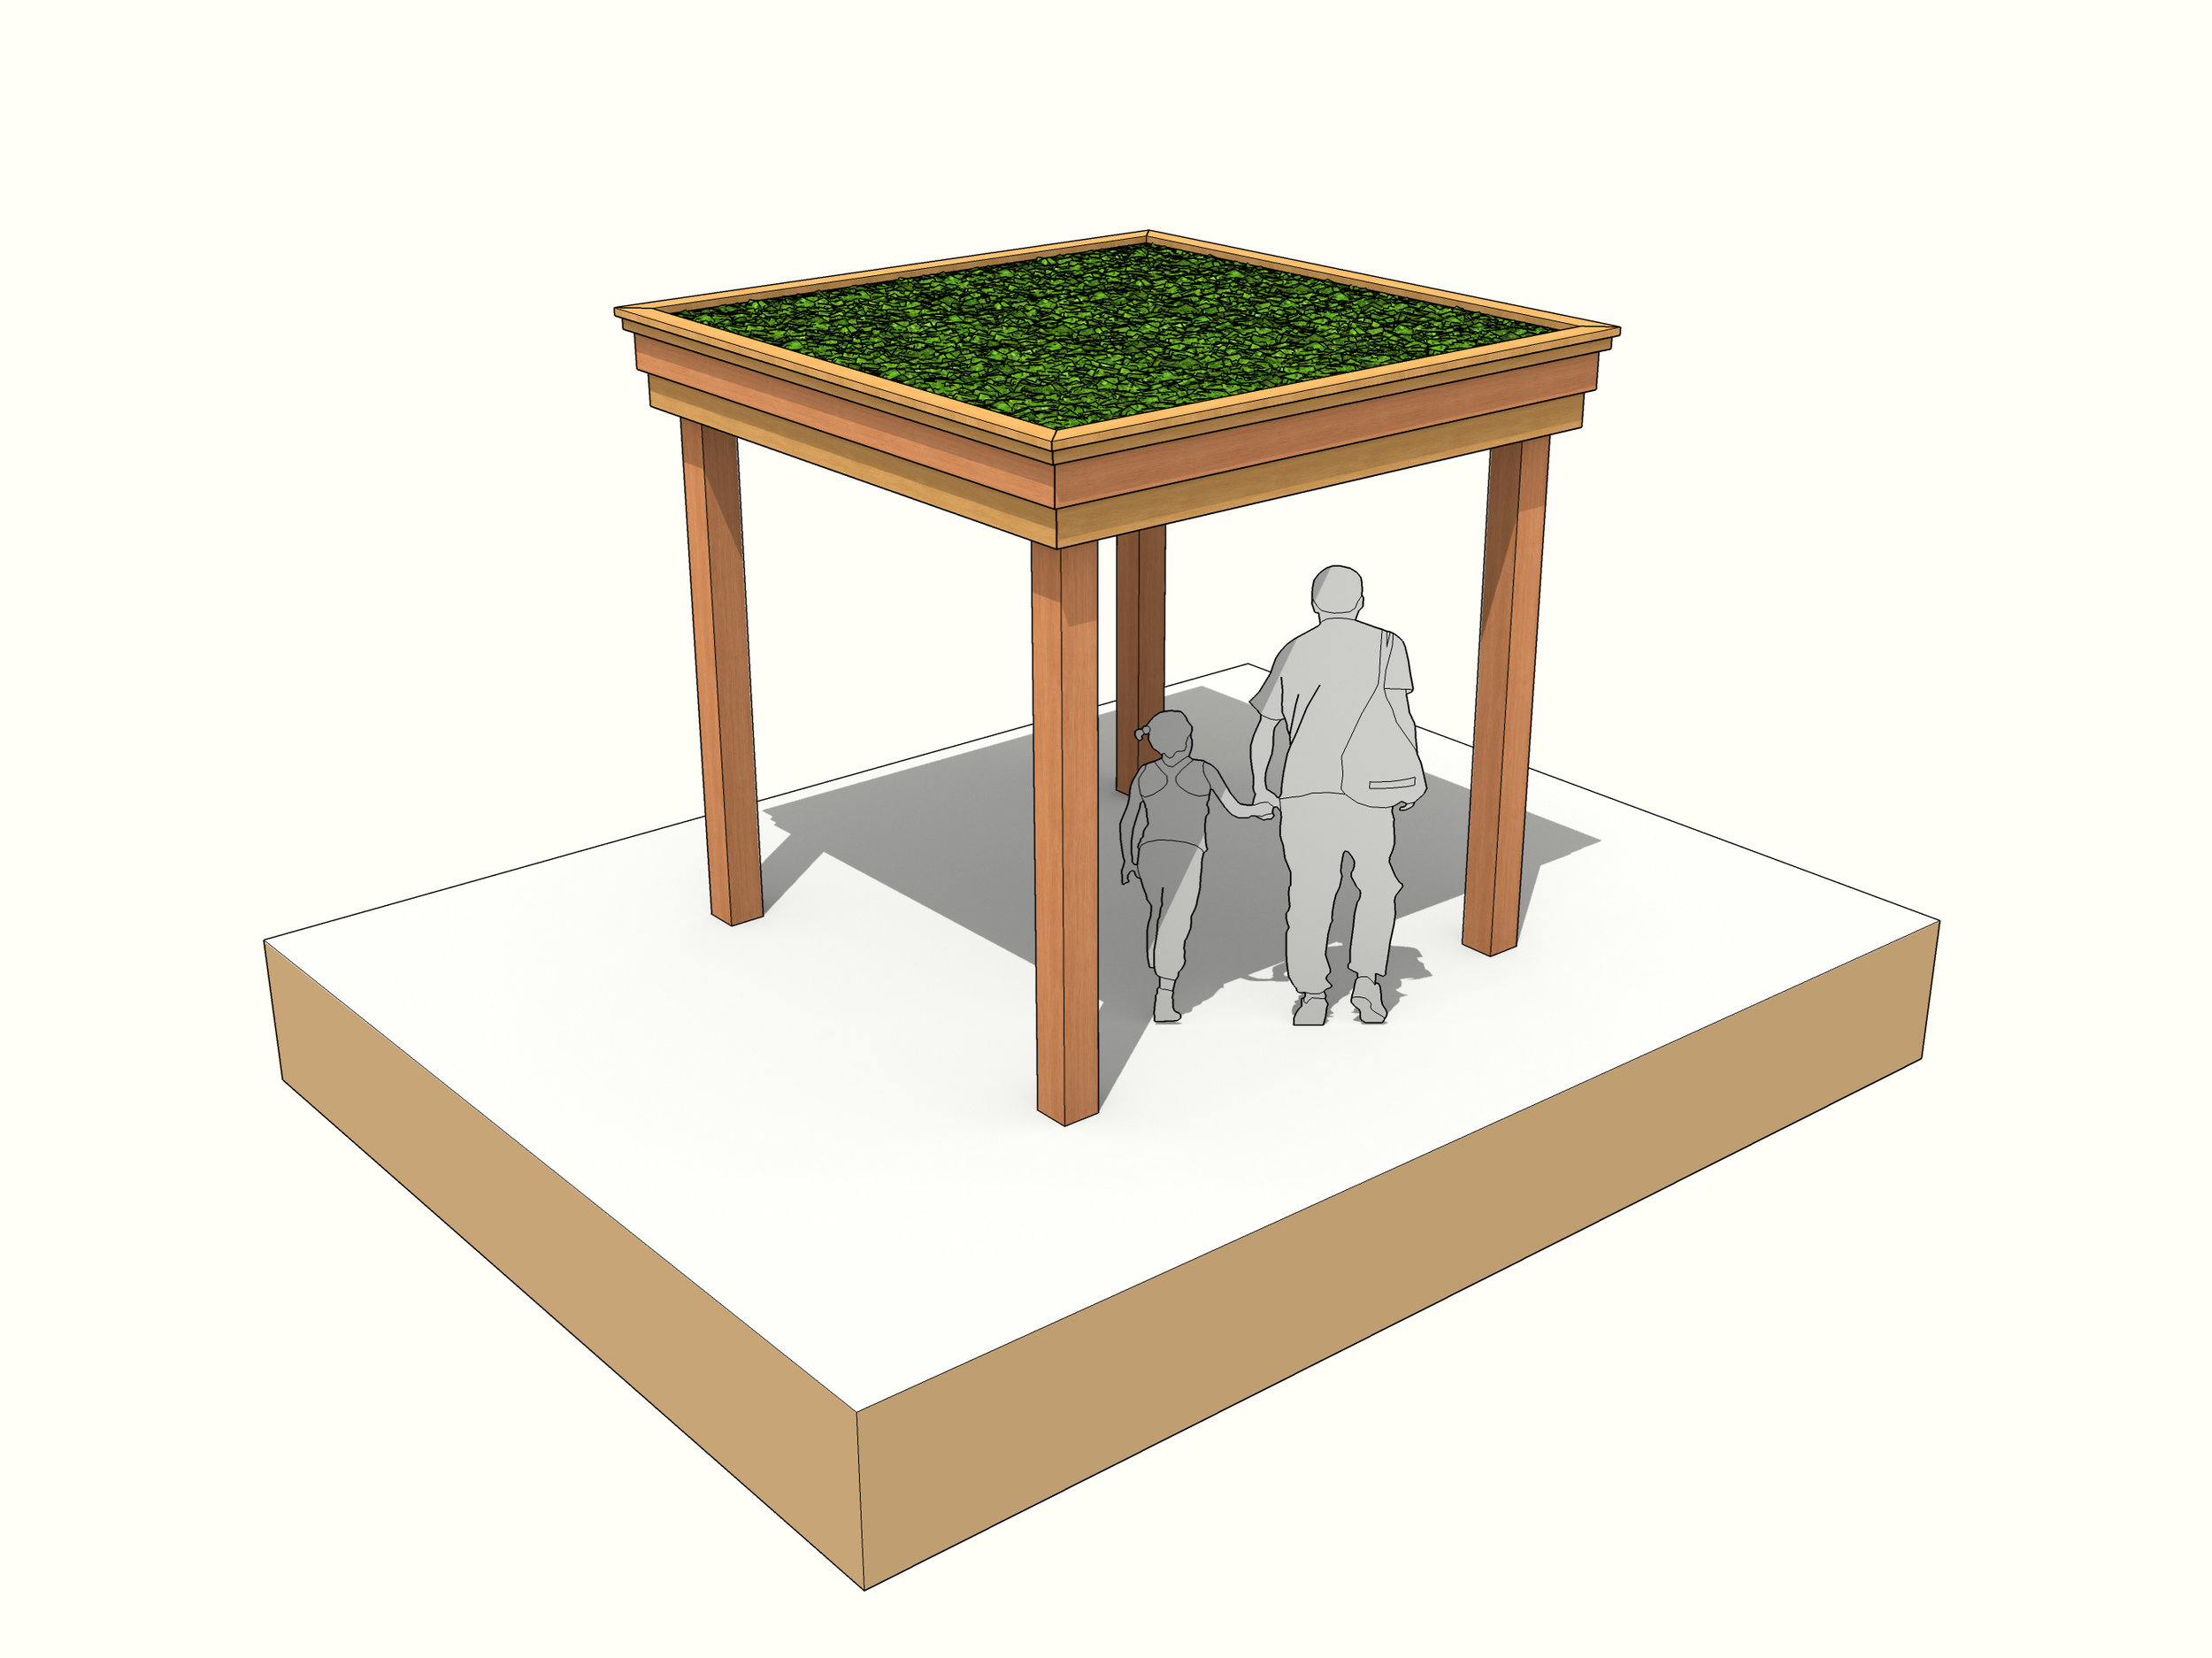 square gazeebo green roof shelter round pole timber frame garden structure.jpg